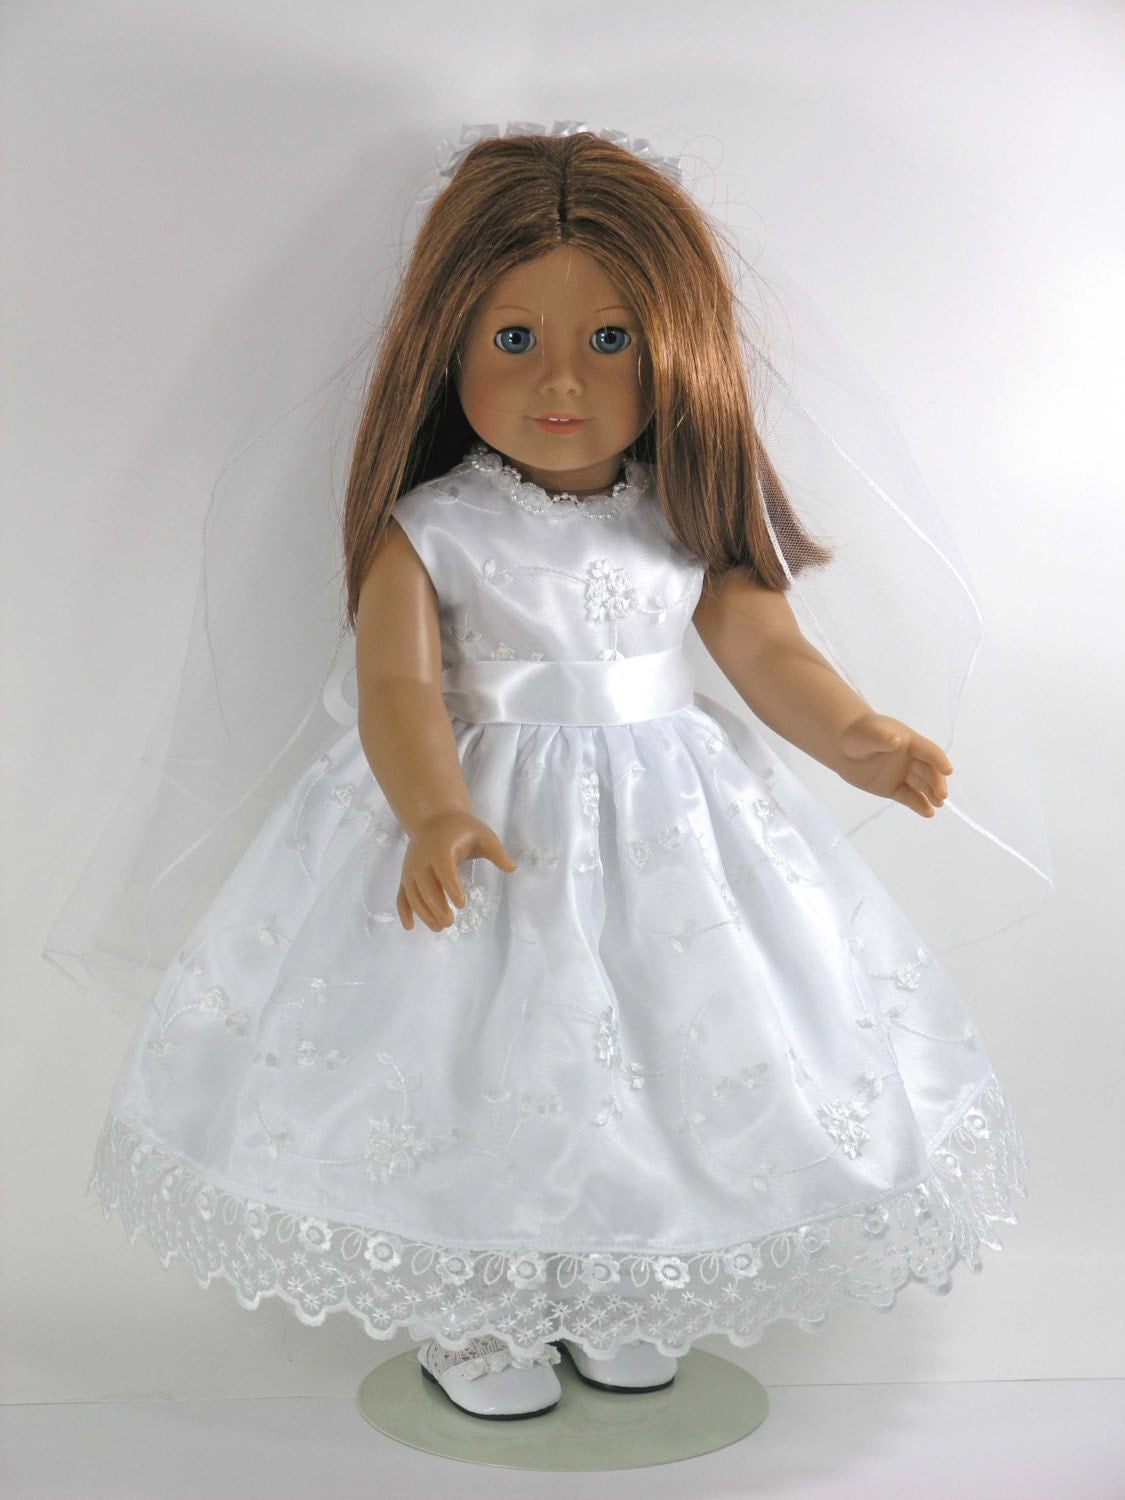 handmade first communion 18 inch american girl doll dress. Black Bedroom Furniture Sets. Home Design Ideas